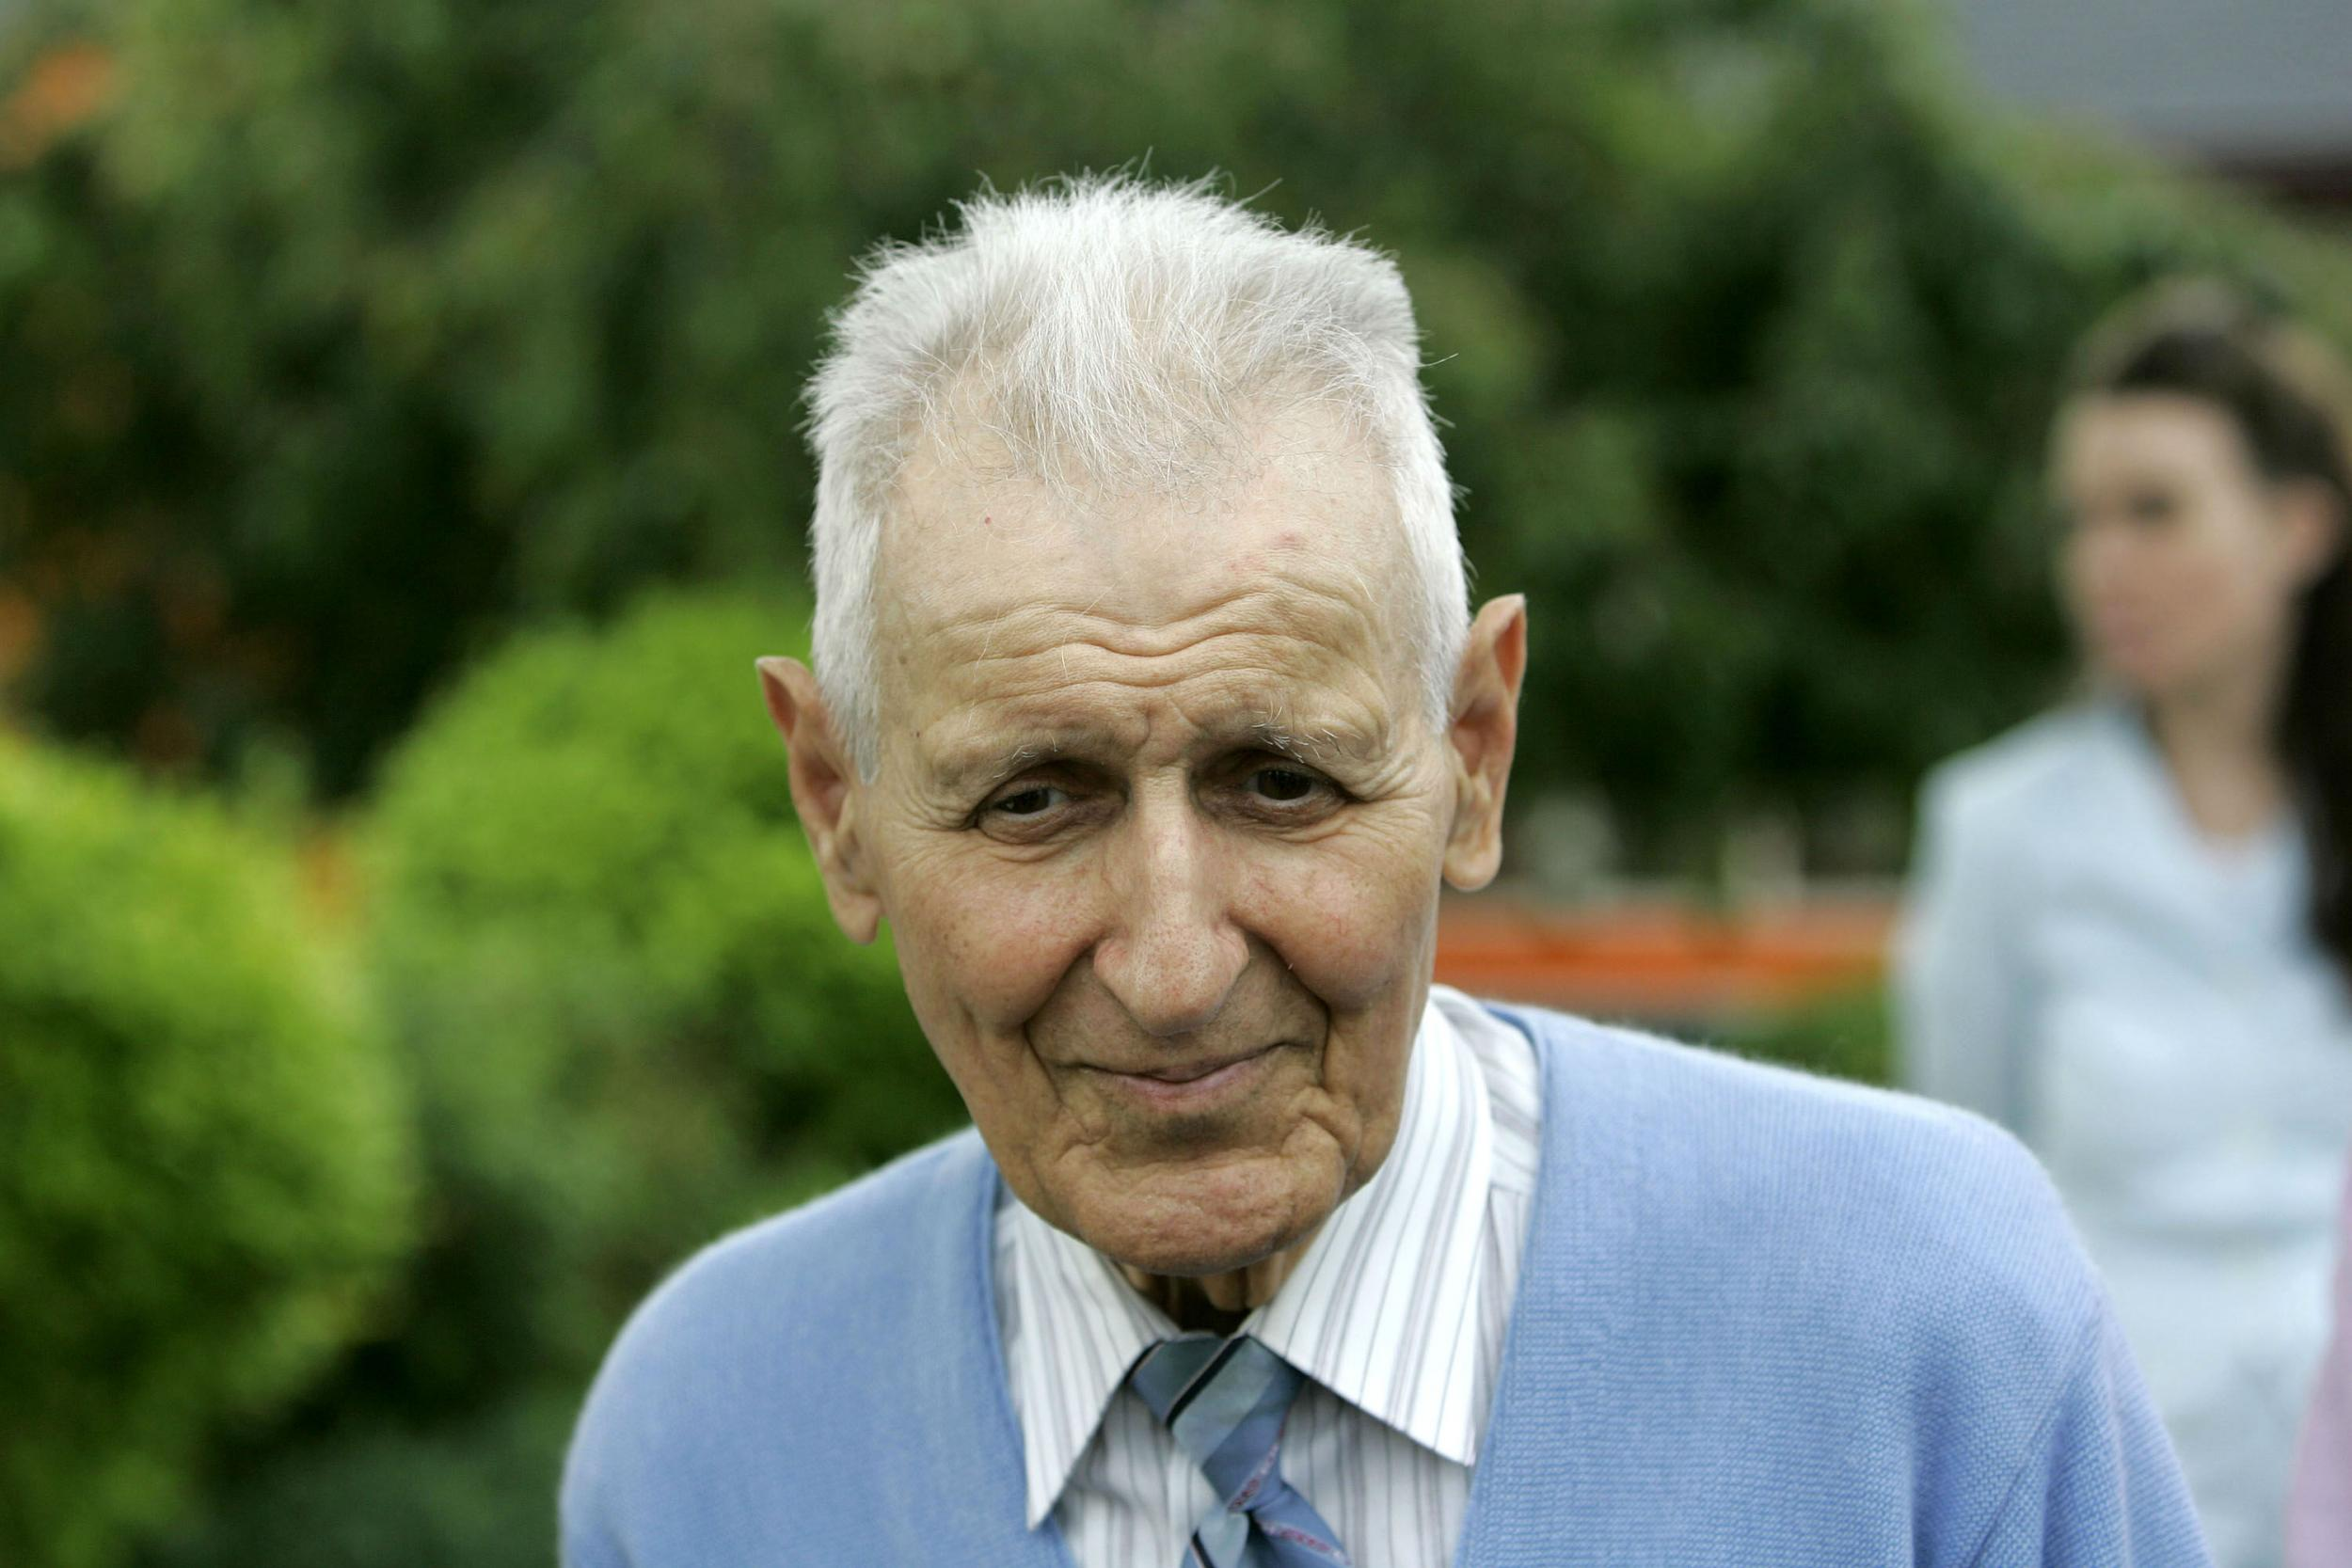 jack kevorkian s papers to be made public to better understand jack kevorkian s papers to be made public to better understand role of dr death in right to die debate the